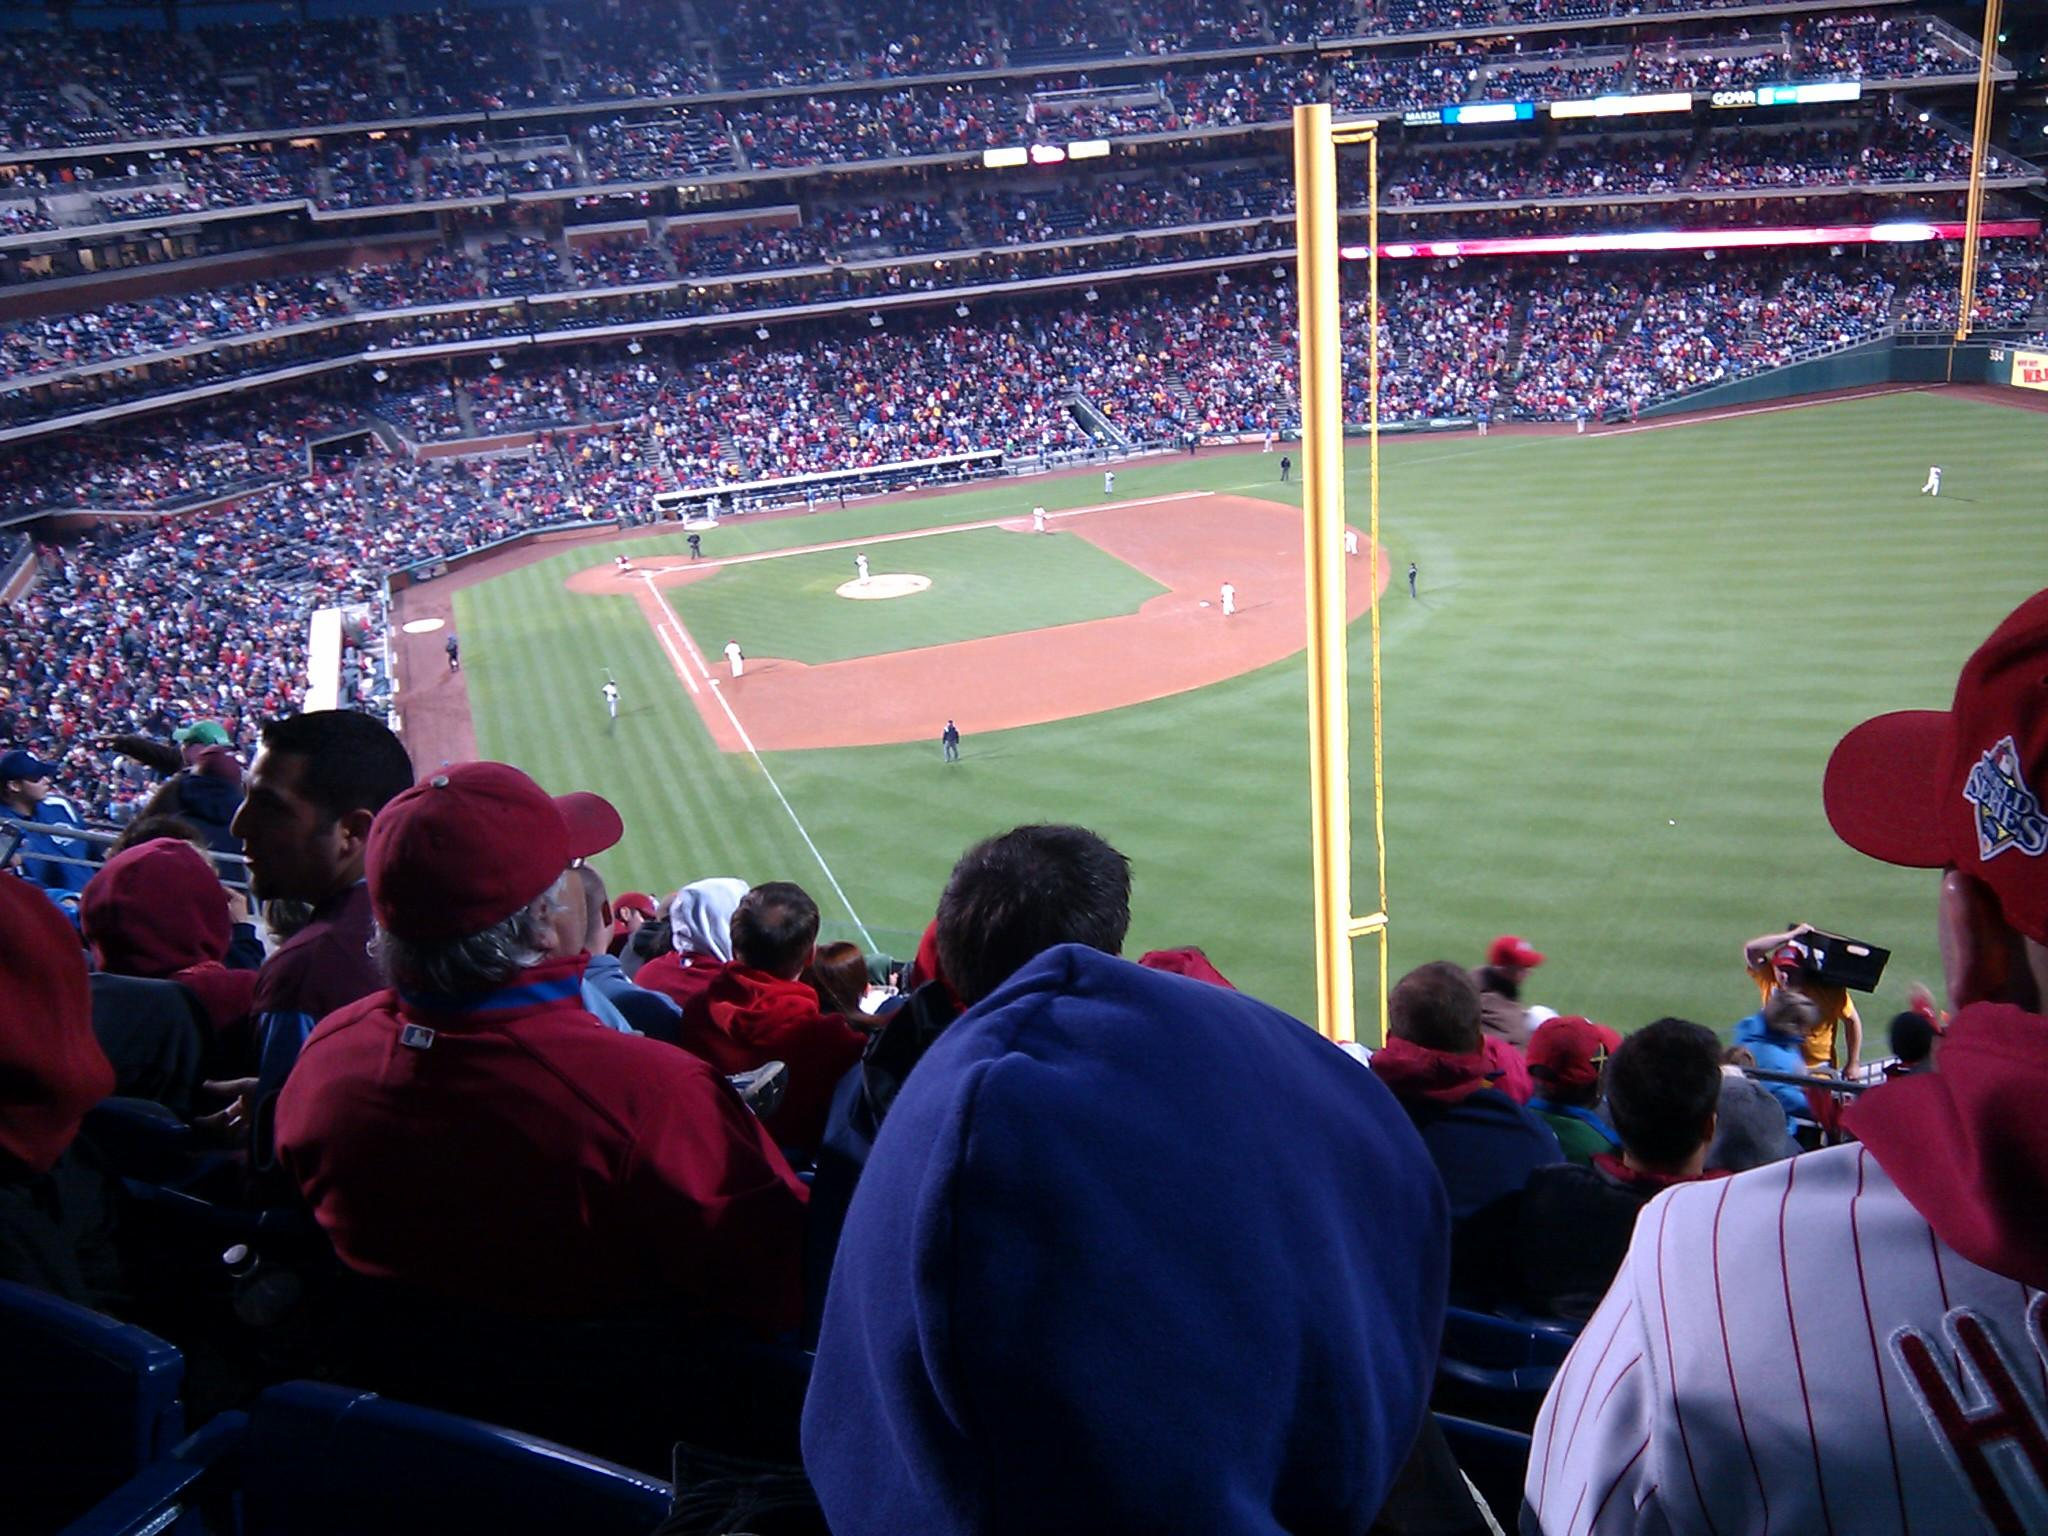 Citizens Bank Park Section 306 Row 14 Seat 6